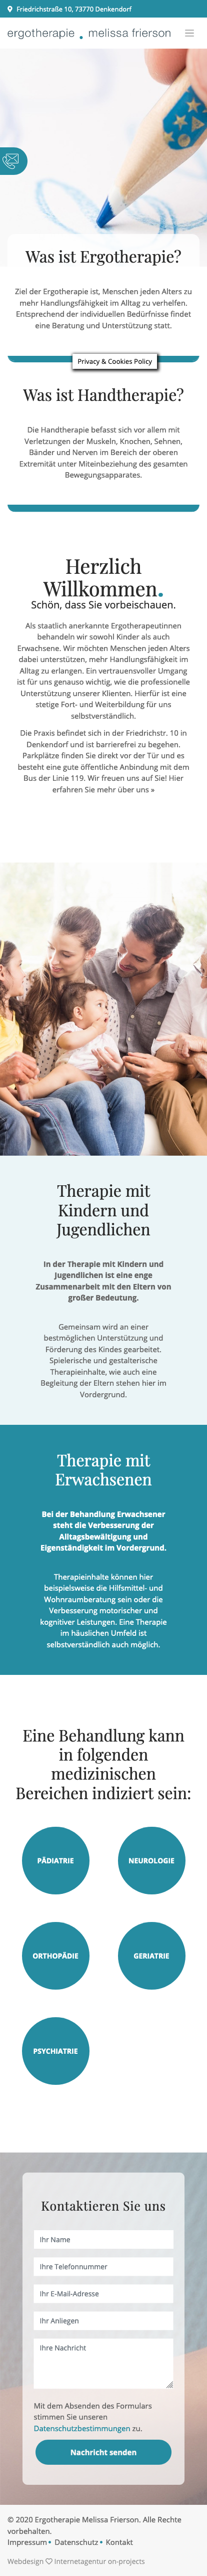 Website Ergotherapie Smartphone